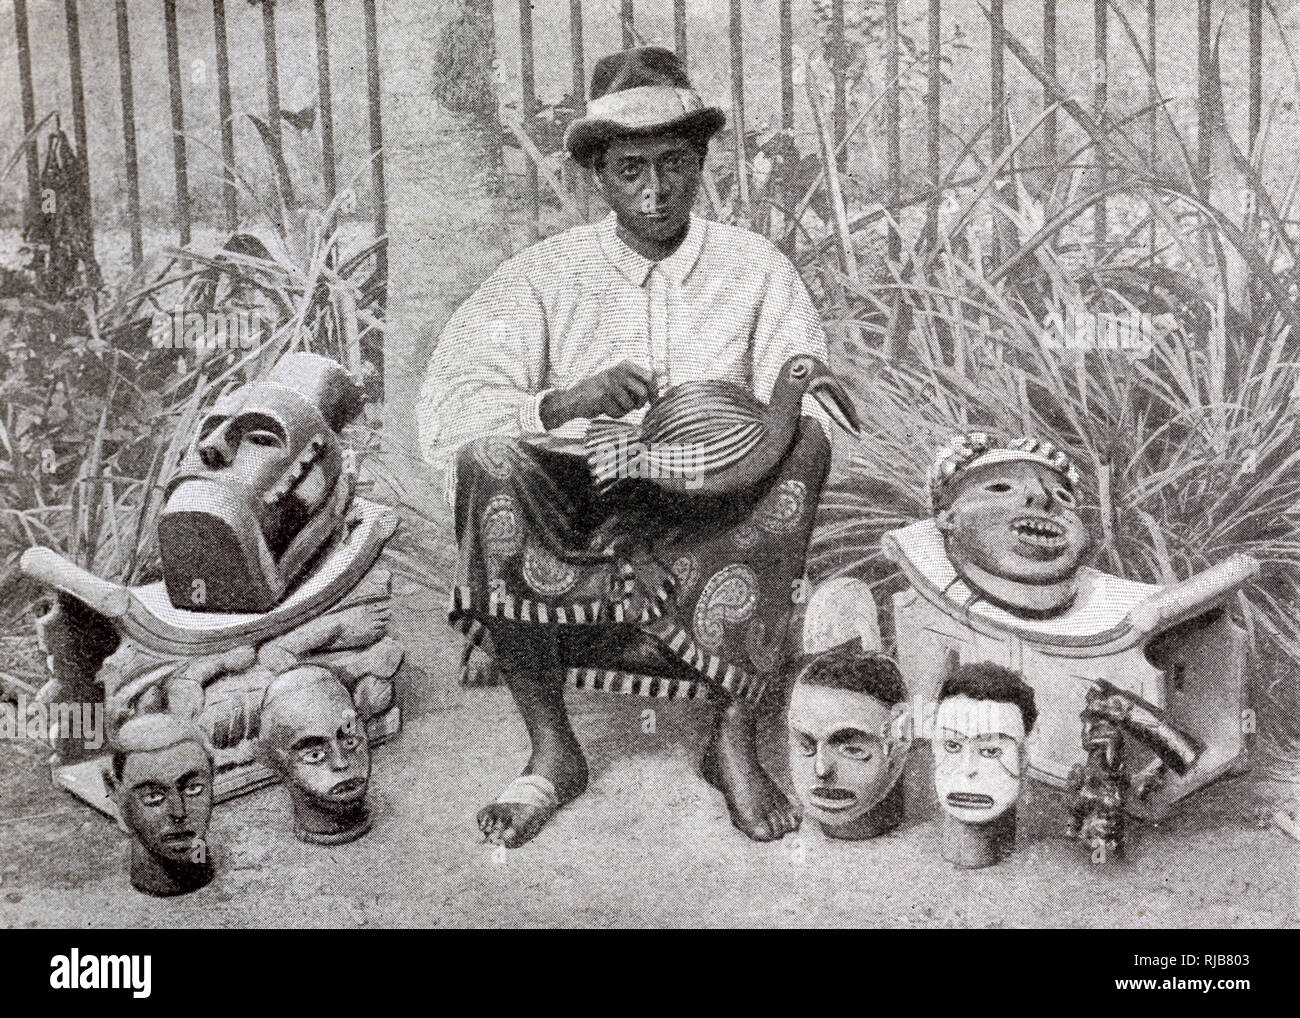 Bantu craftsman of Douala (Duala) making wooden carvings, Cameroon, Central West Africa (at the time a French colony). Stock Photo